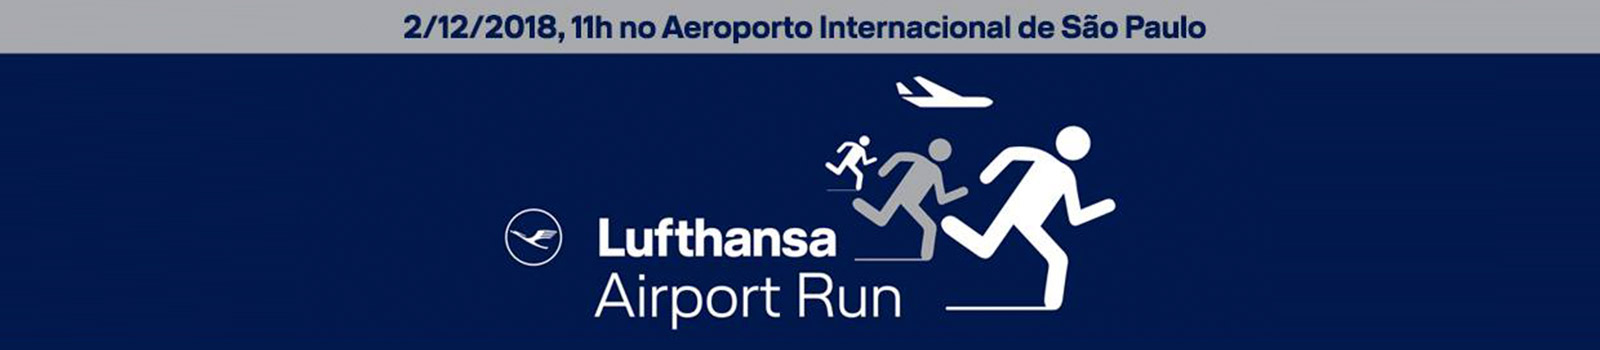 LUFTHANSA AIRPORT RUN